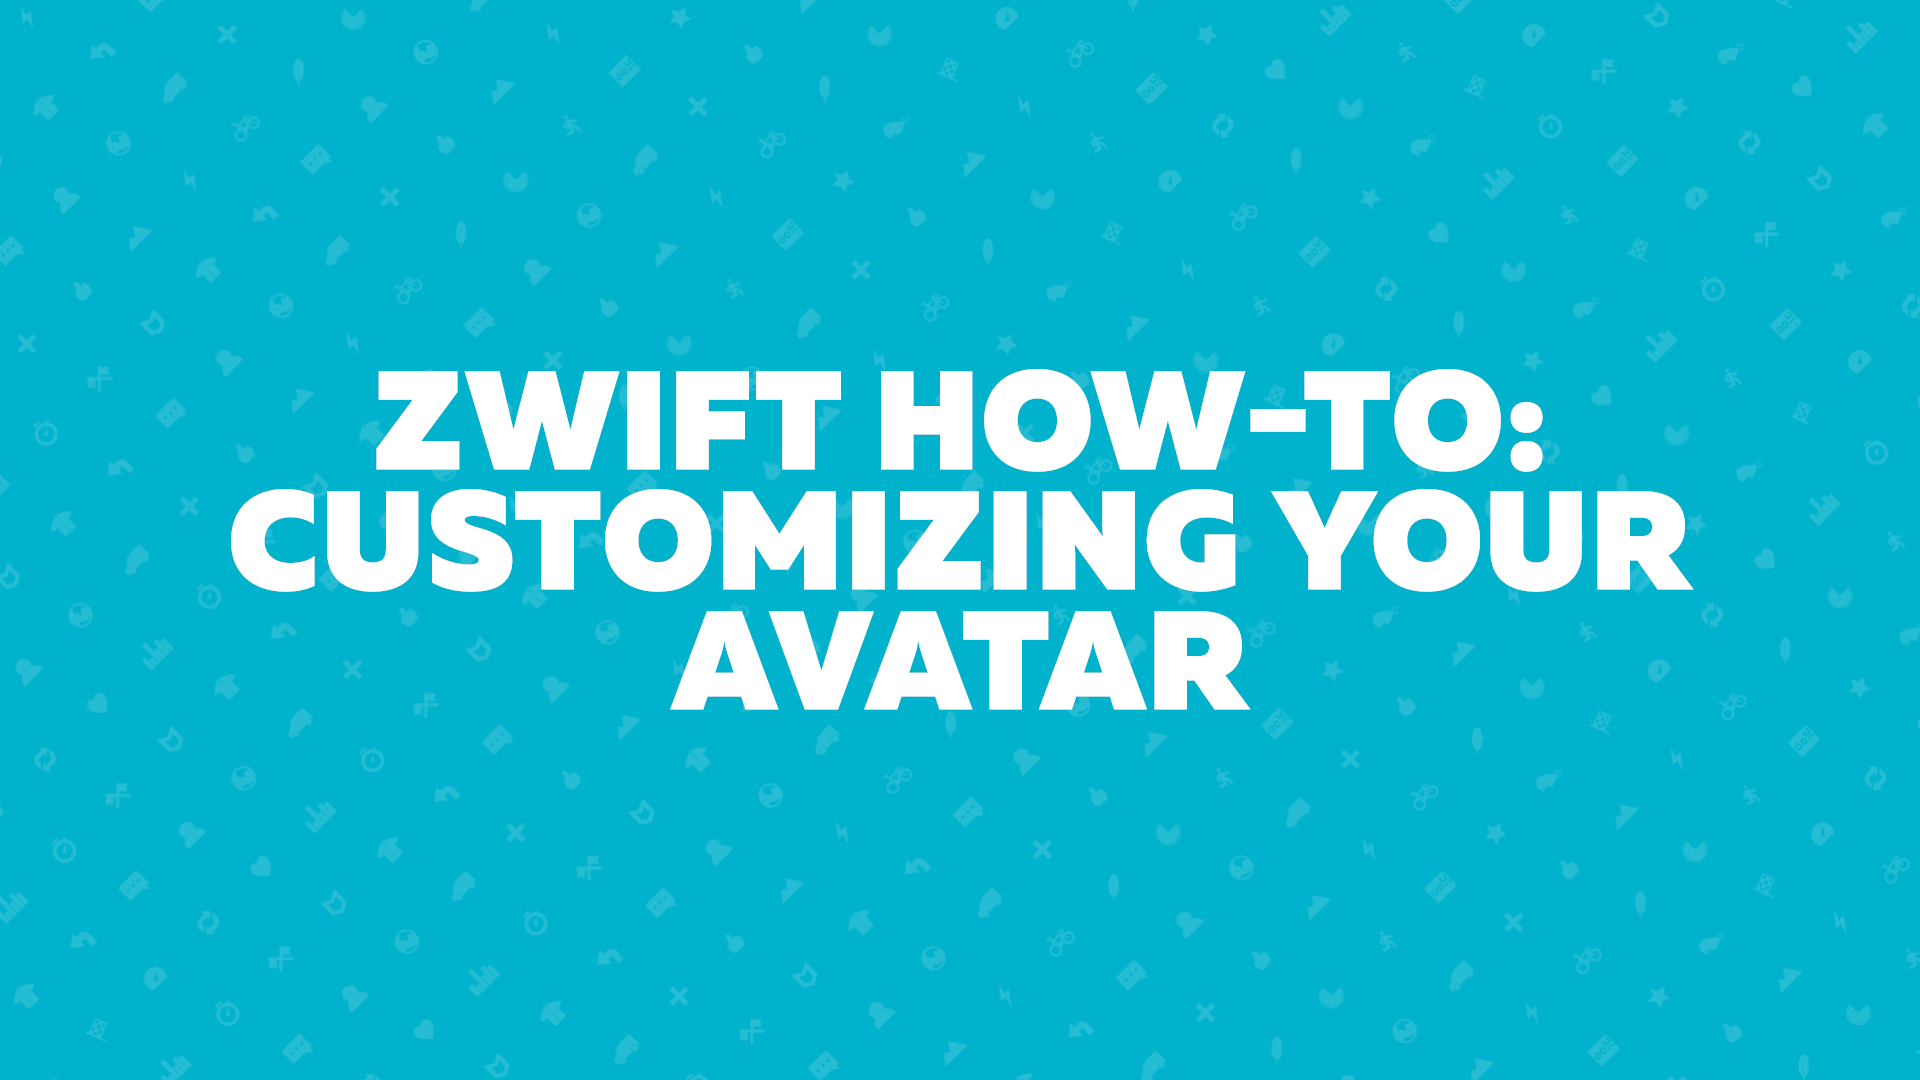 Zwift How-To: Customizing Your Avatar | Zwift